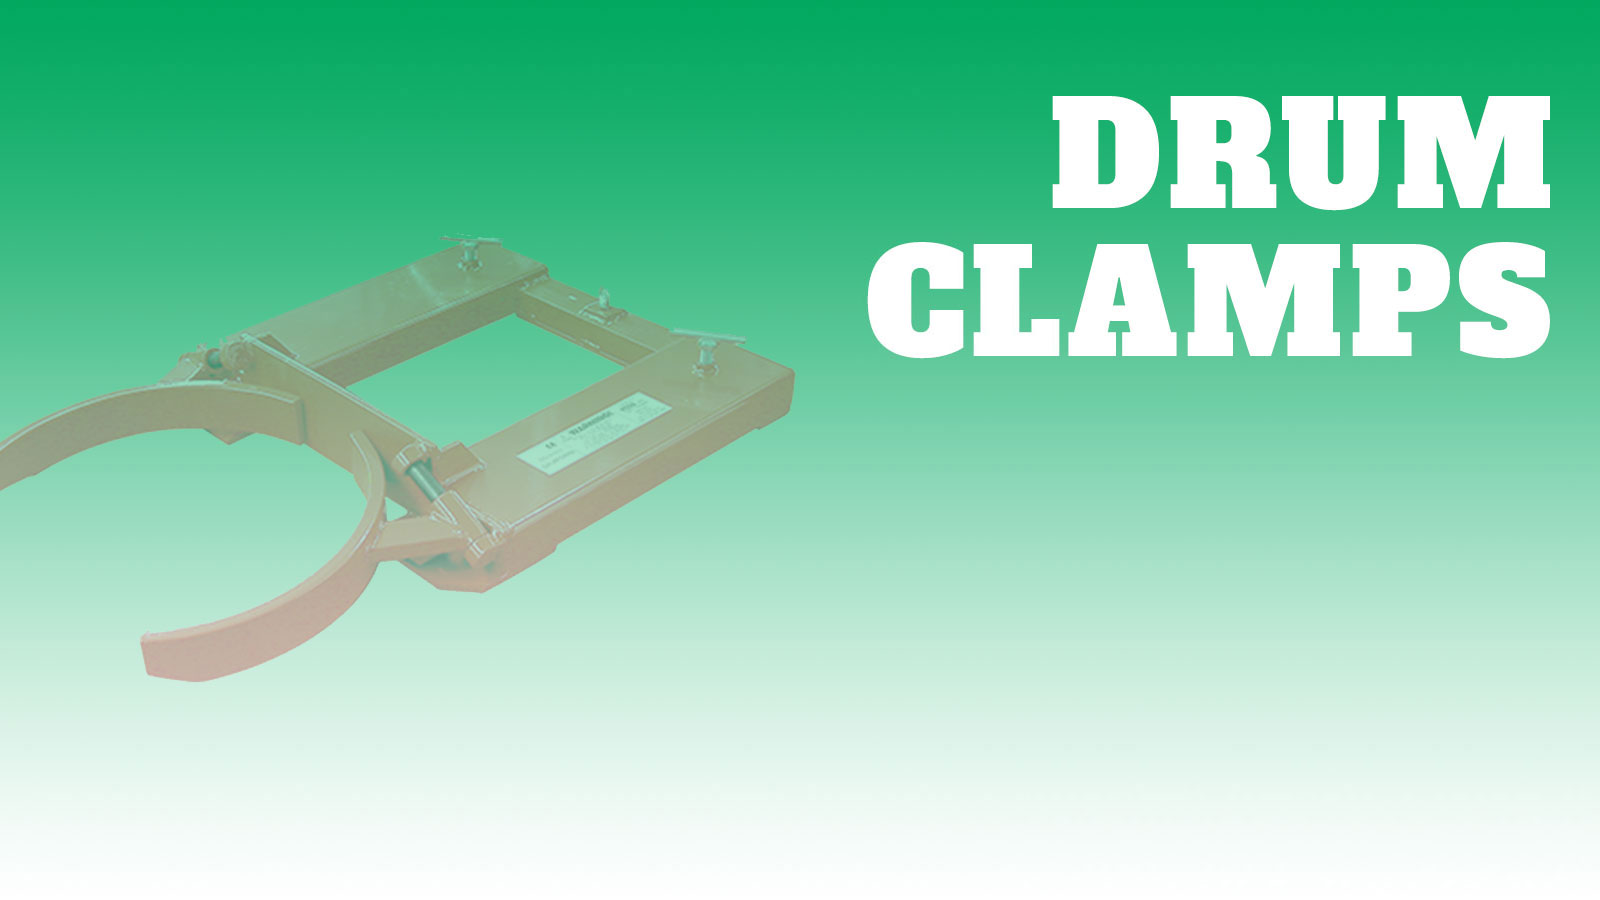 DrumHandling-Clamps